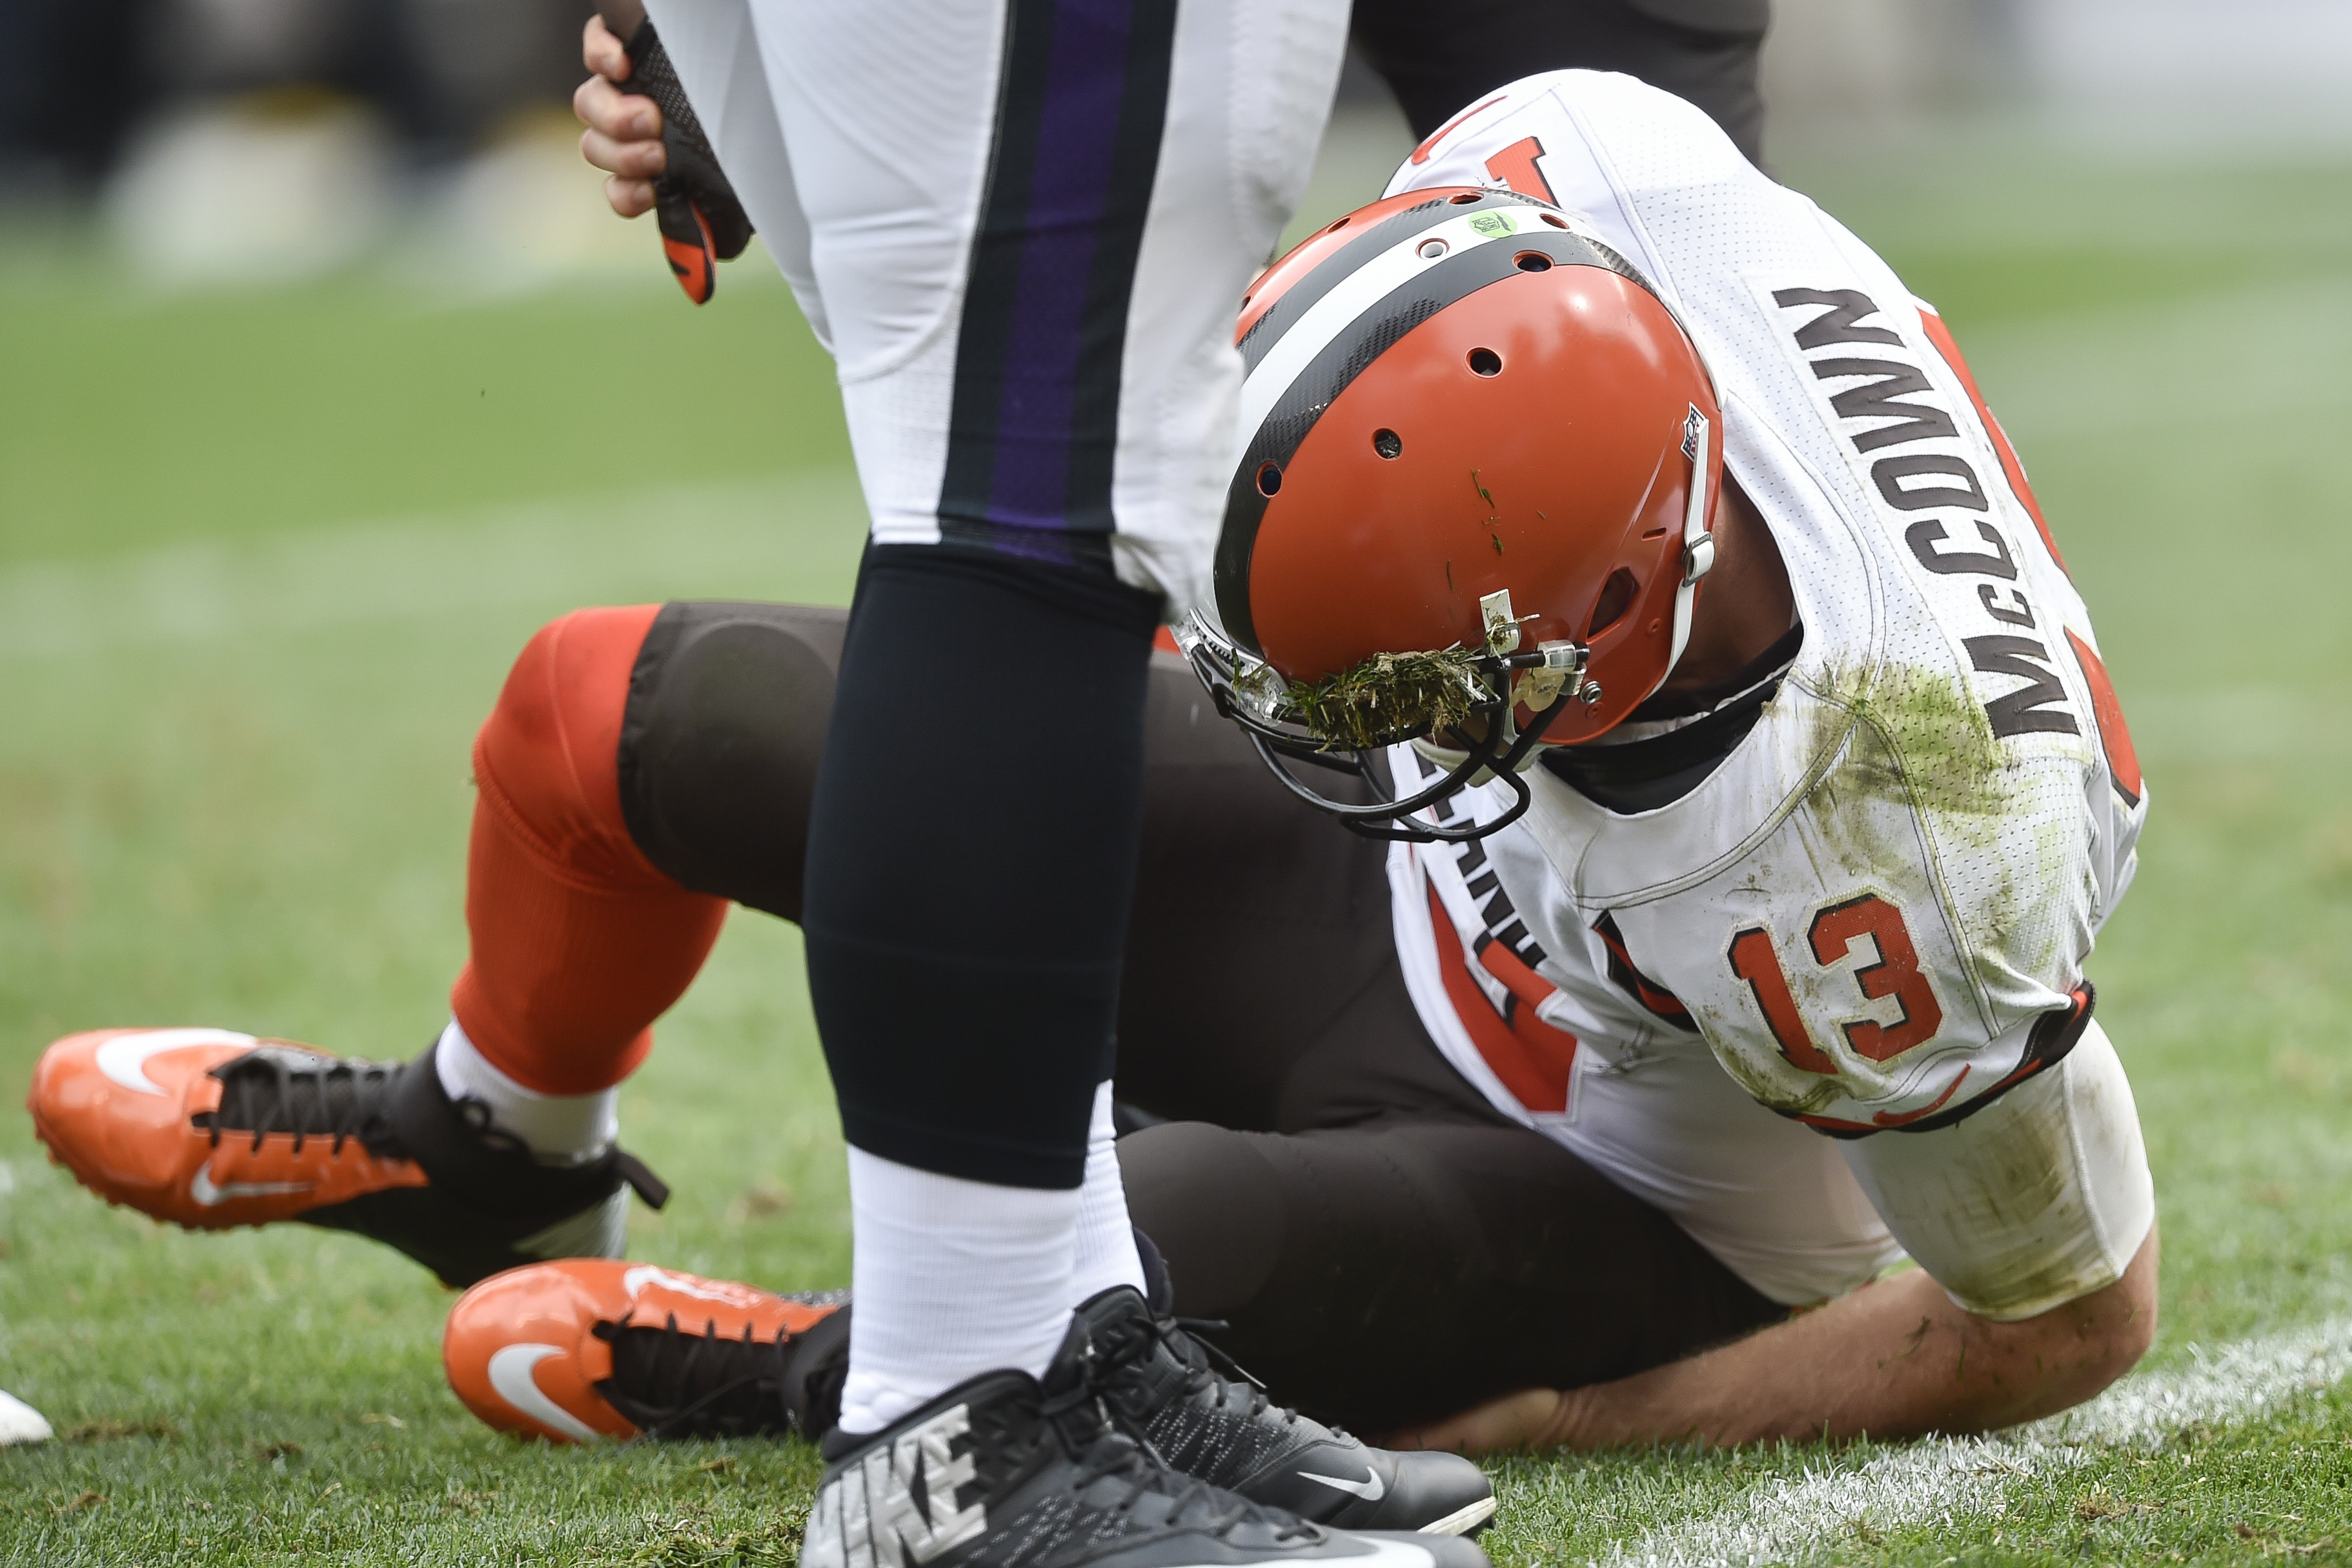 Cleveland Browns quarterback Josh McCown (13) struggles to his feet after taking a hit from Baltimore Ravens inside linebacker C.J. Mosley in the second half of an NFL football game, Sunday, Sept. 18, 2016, in Cleveland. (AP Photo/David Richard)